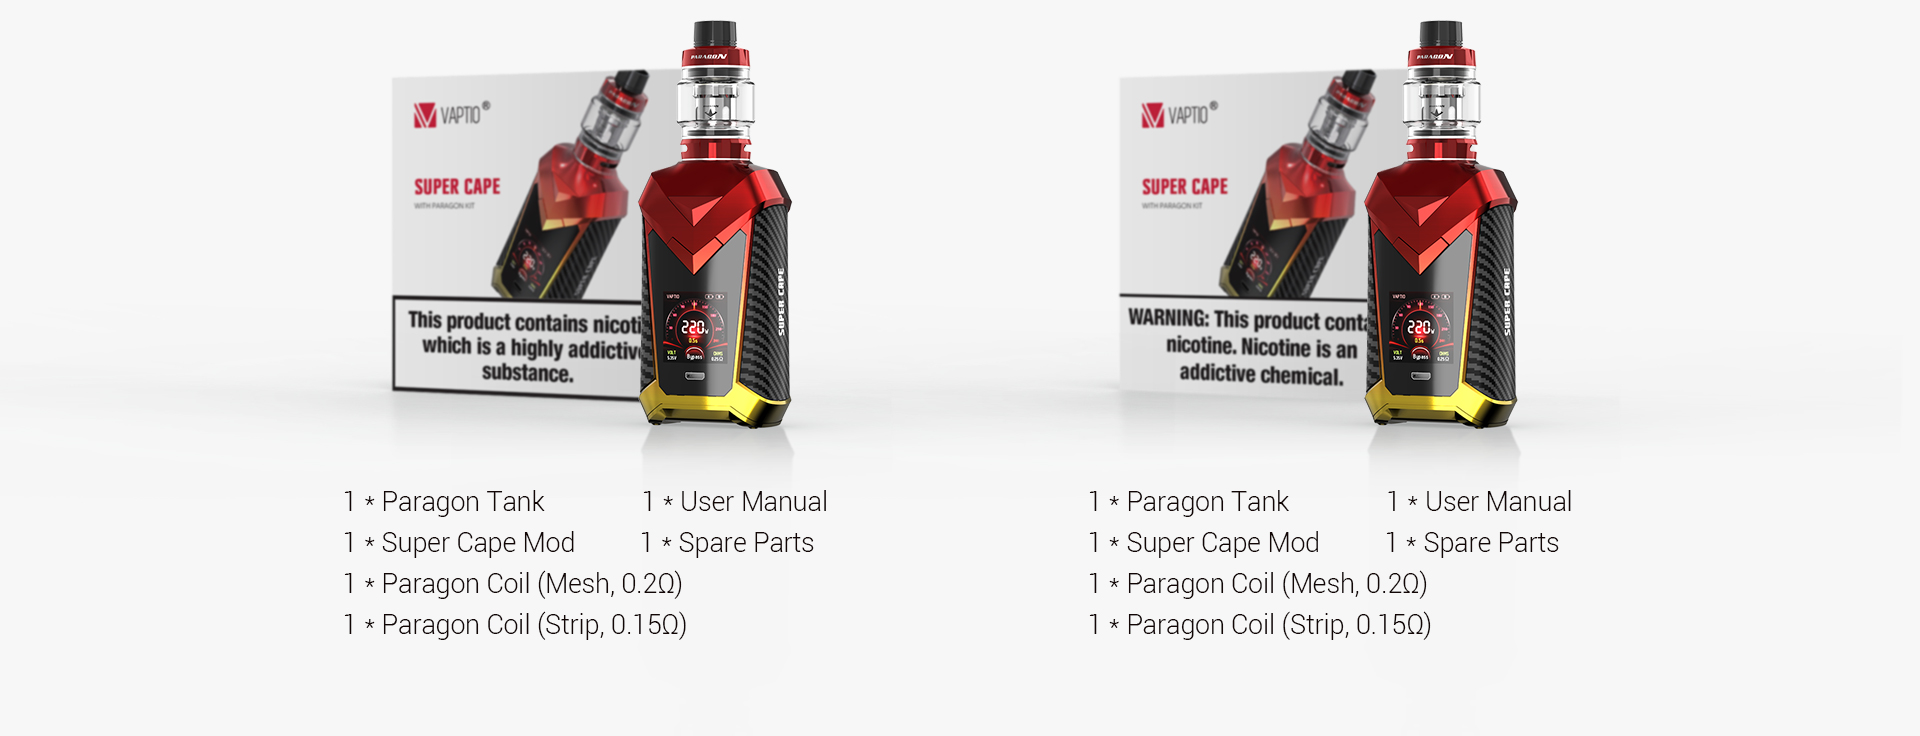 hight resolution of 1 x super cape mod 1 x paragon coil mesh 0 2 1 x paragon coil strip 0 15 1 x usb cable 1 x user manual 1 x spare part